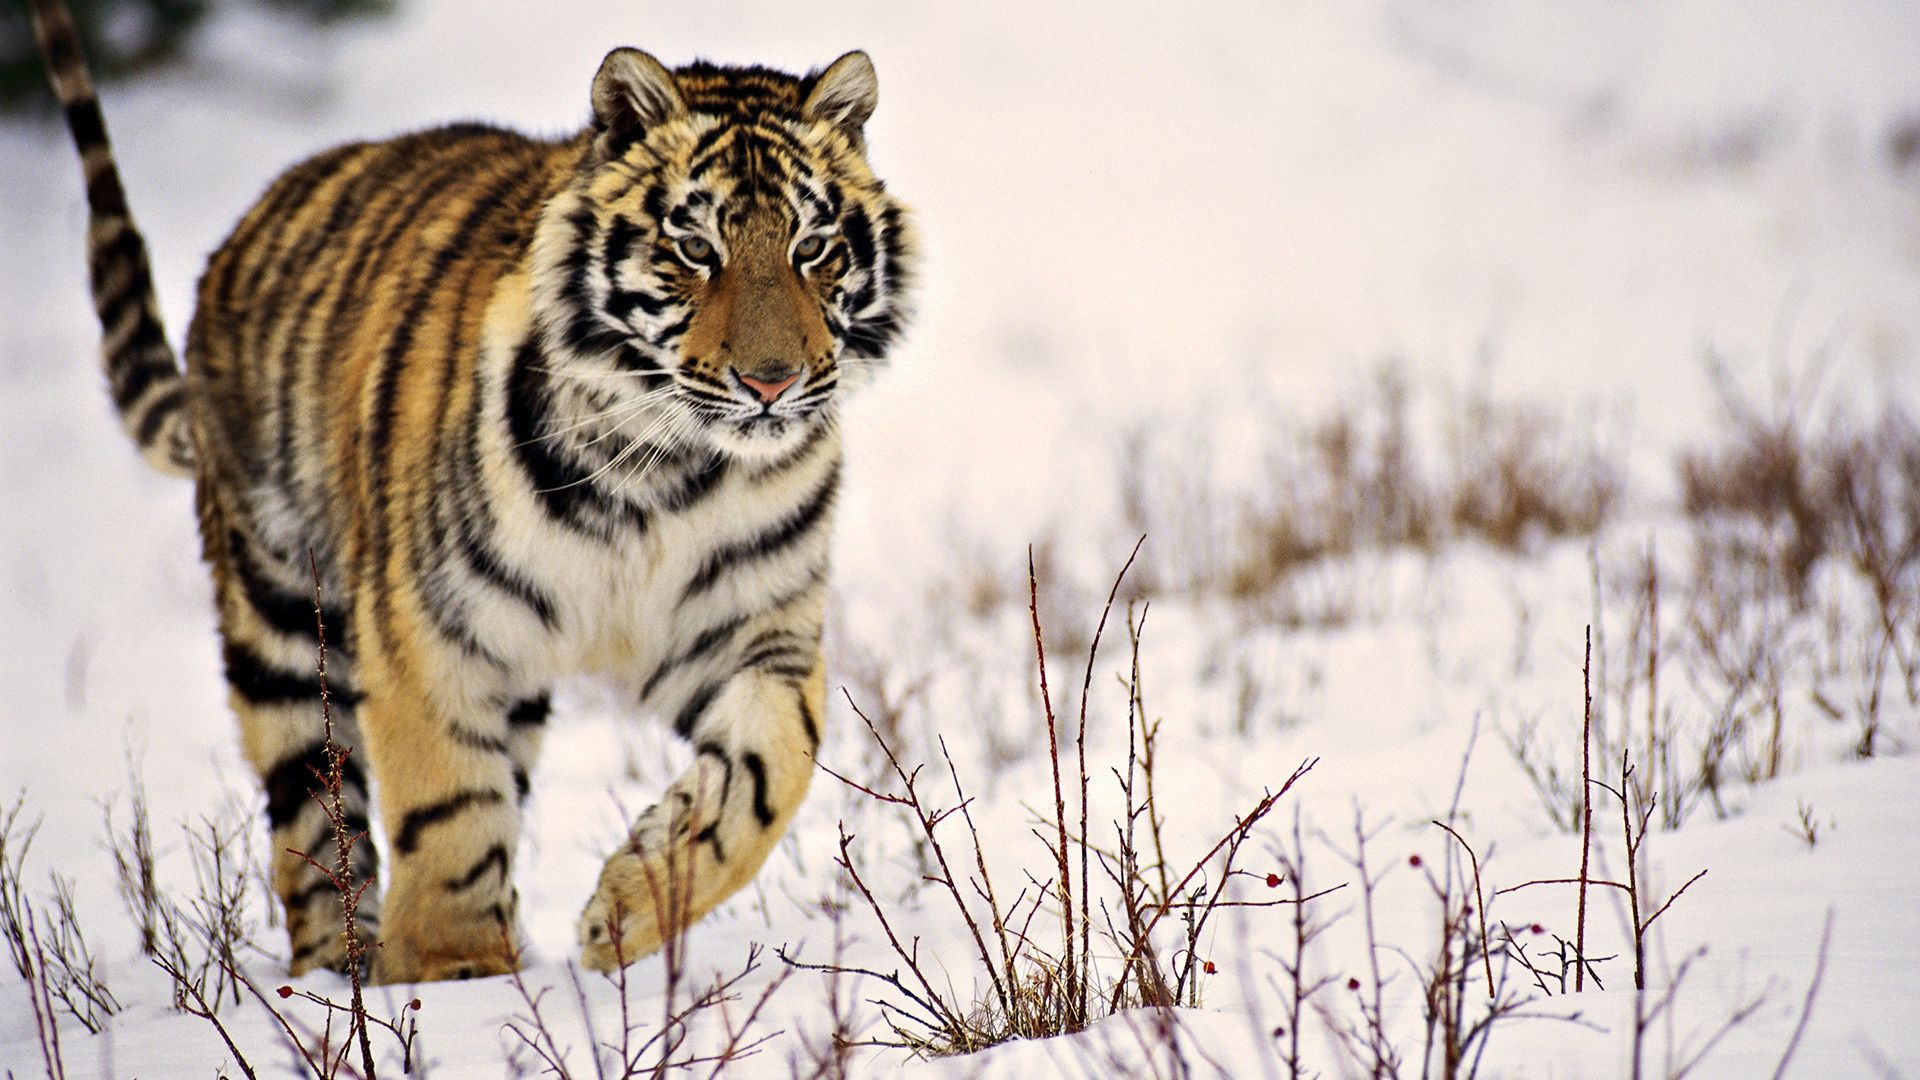 84133 download wallpaper Animals, Tiger, Grass, Stroll, Predator, Snow screensavers and pictures for free